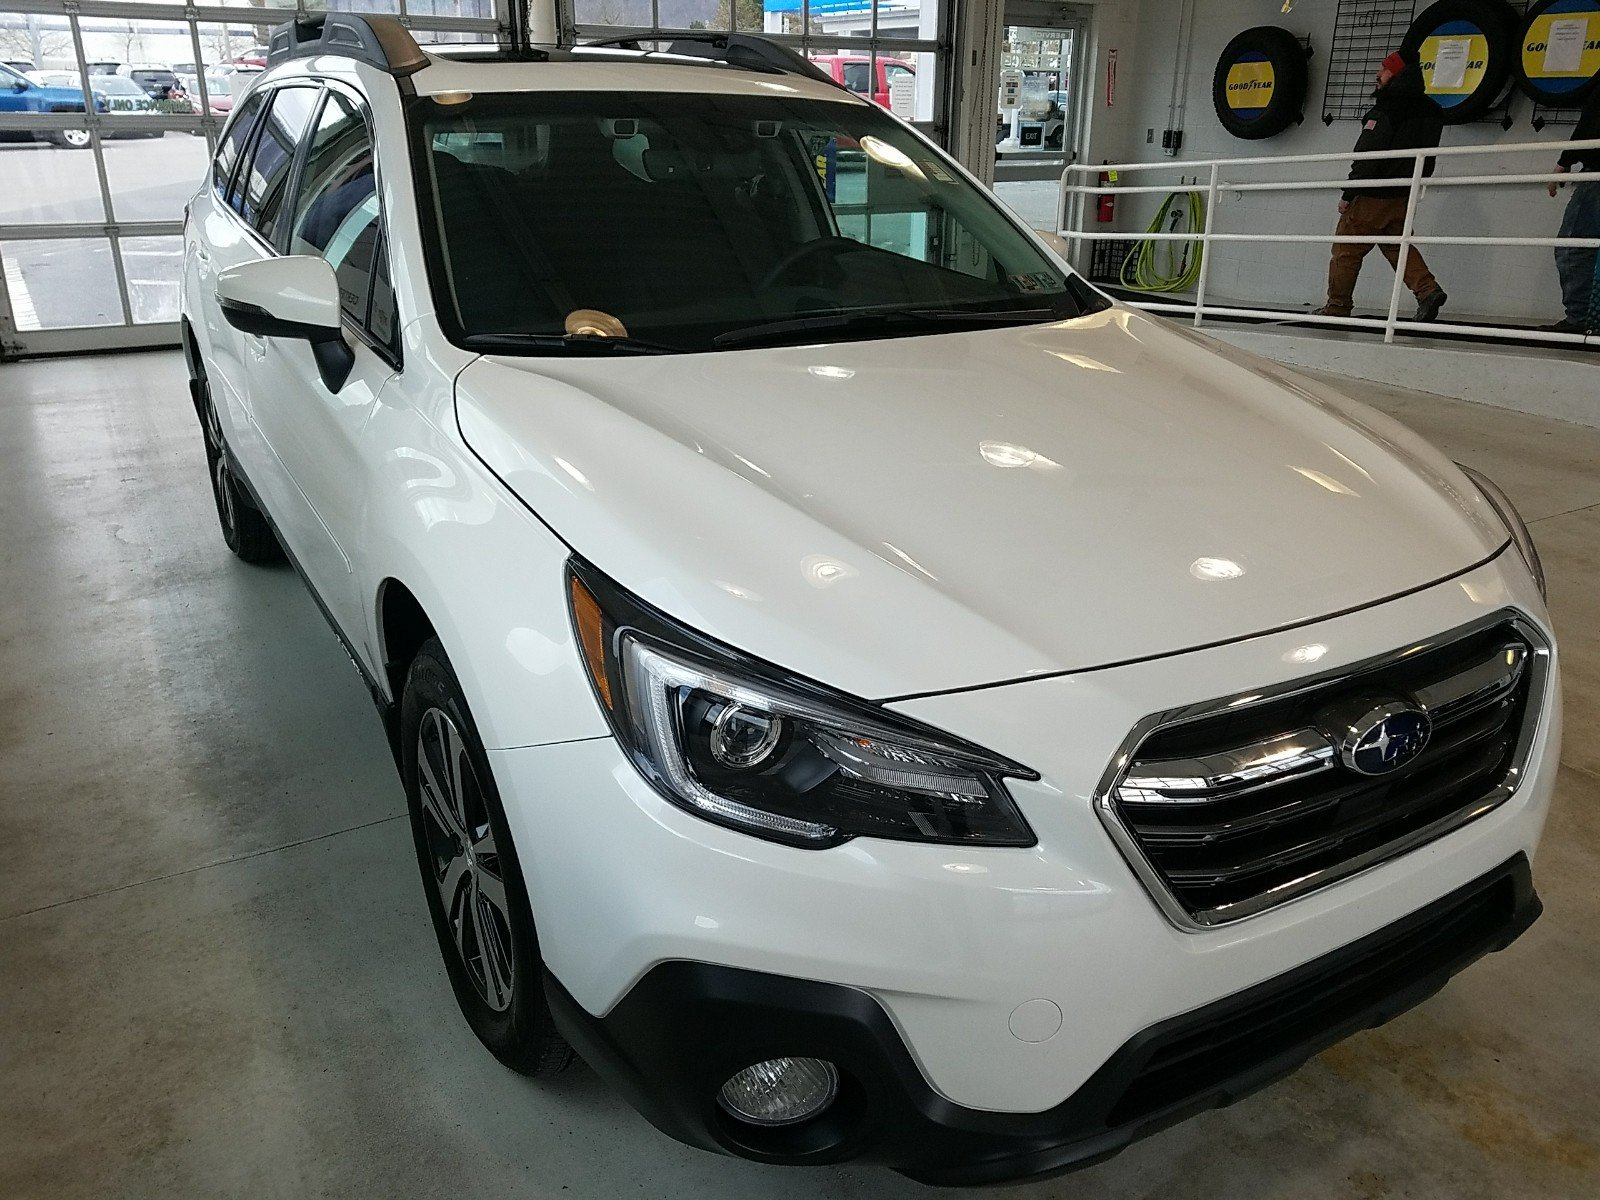 2018 Subaru Outback 2.5i Limited SUV for sale in State College, PA